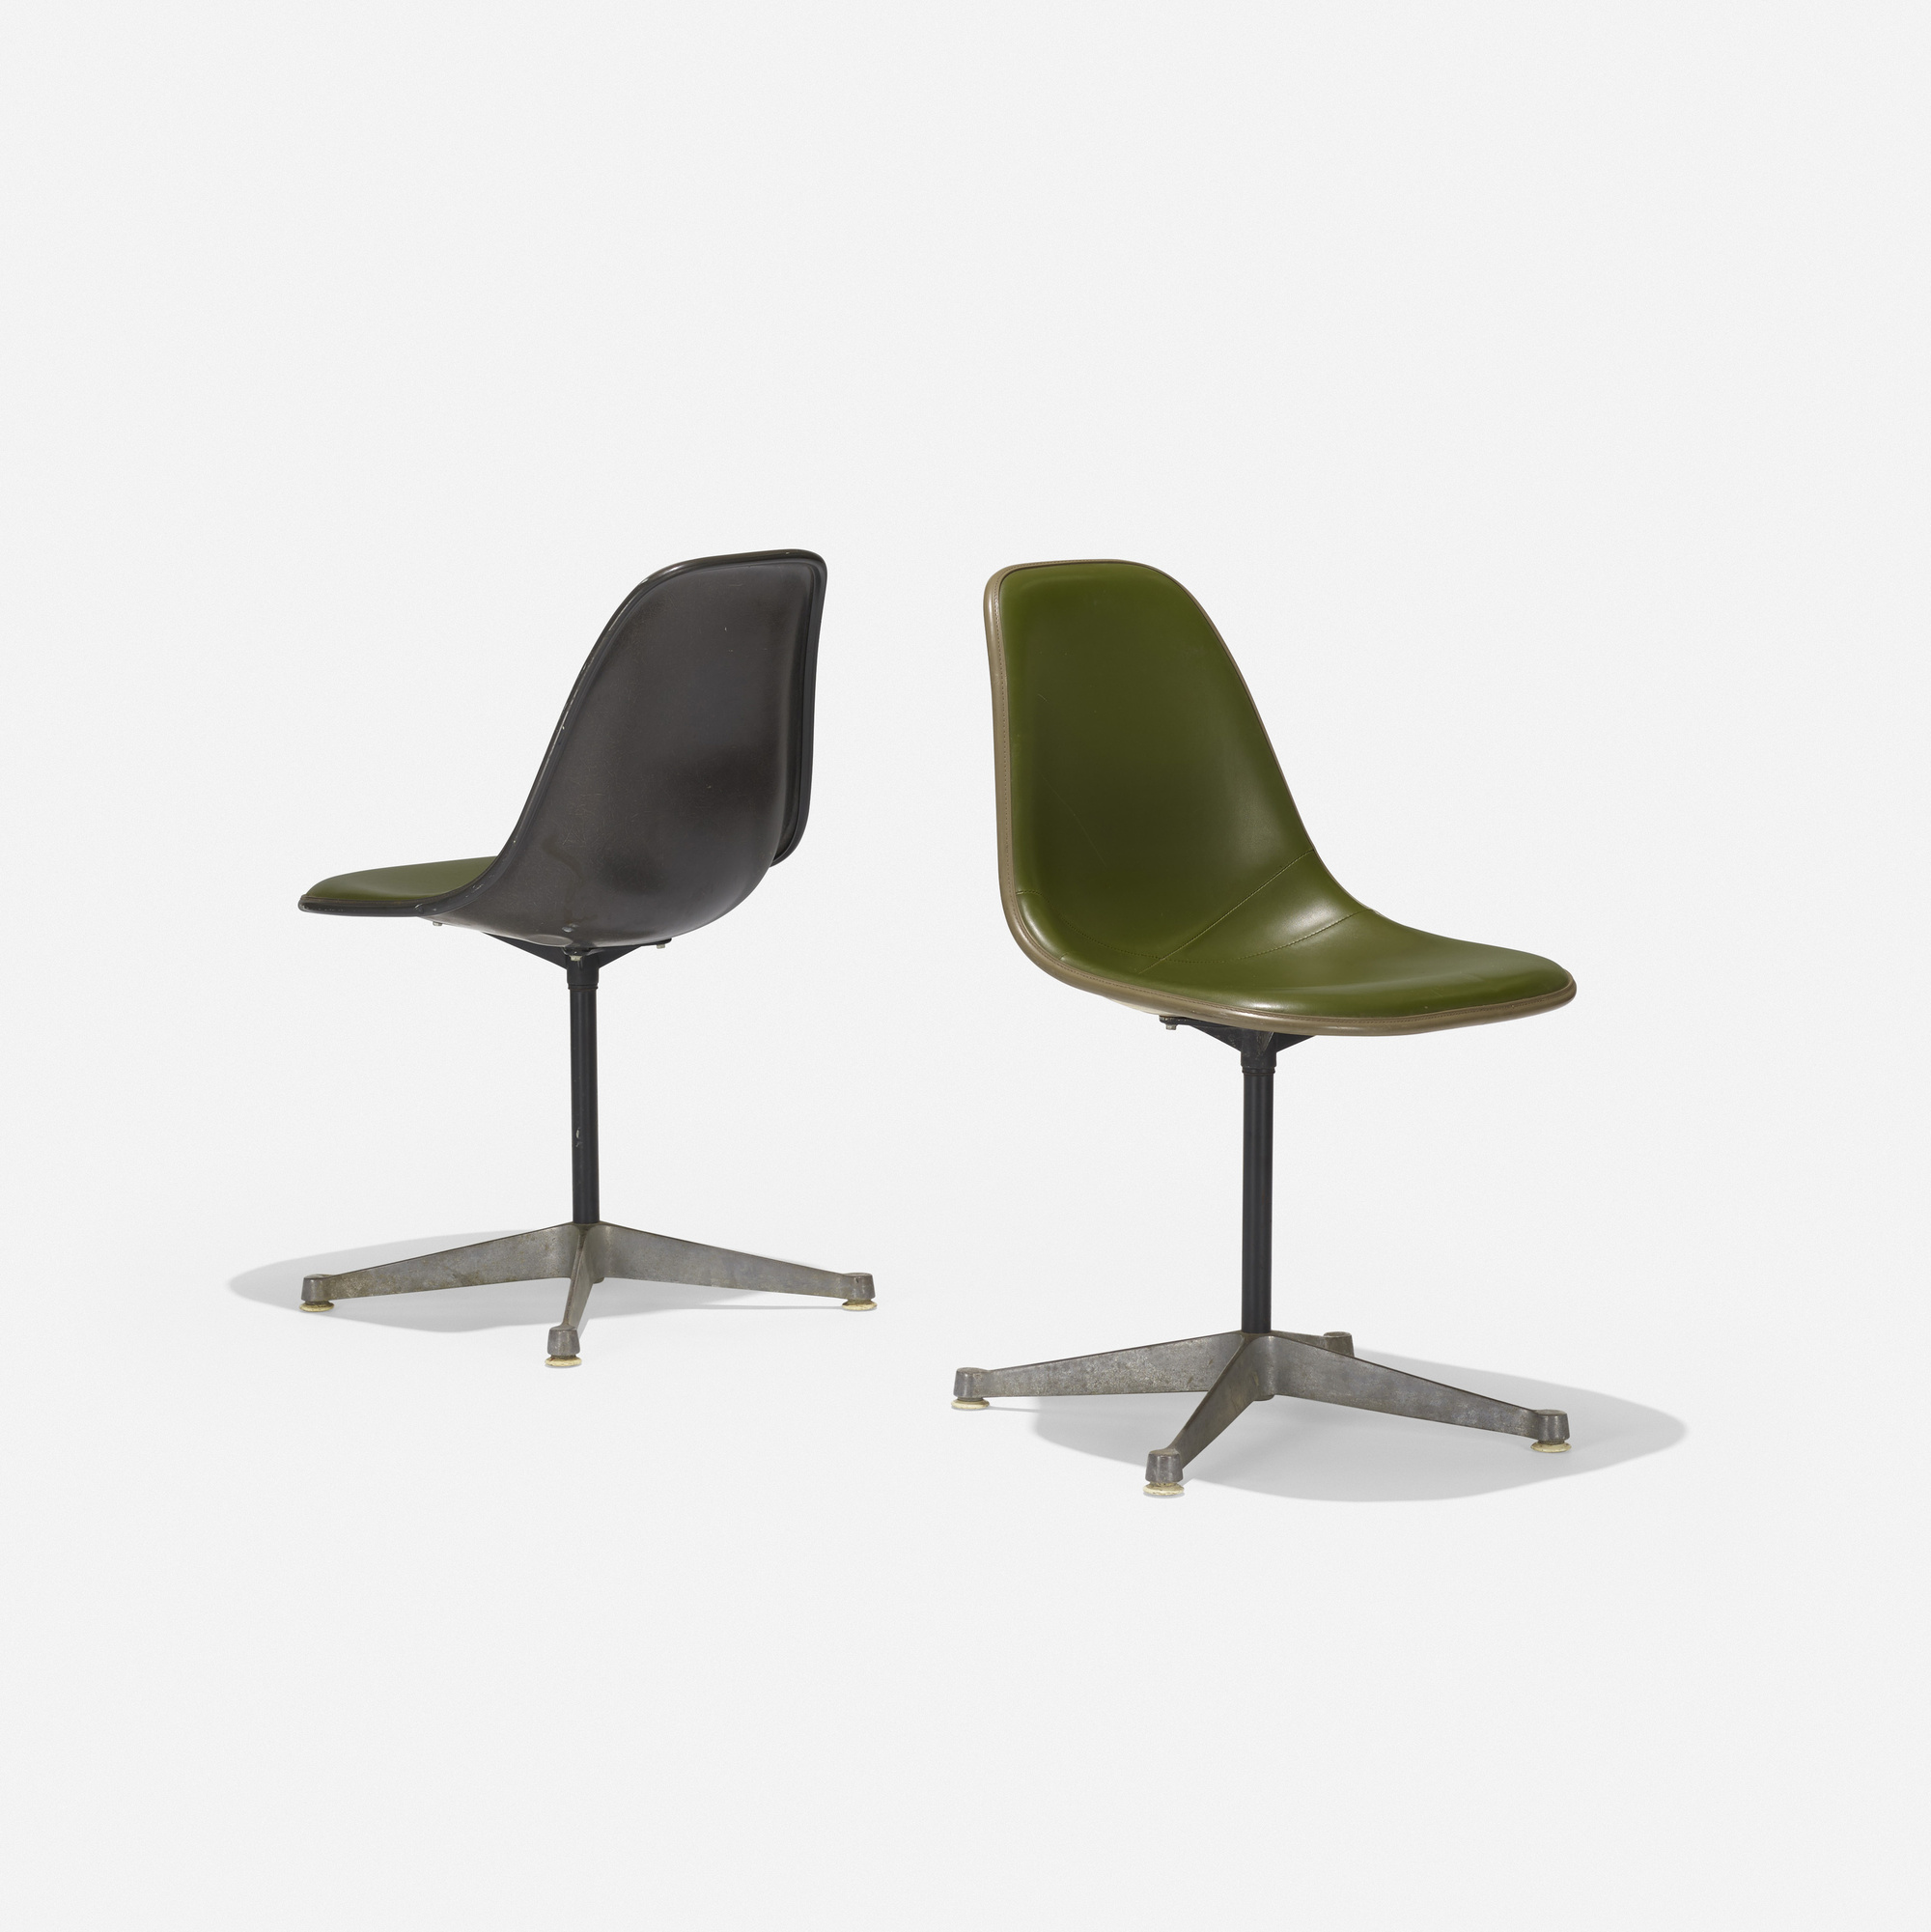 209: Charles and Ray Eames / PSC-1s, pair (1 of 1)